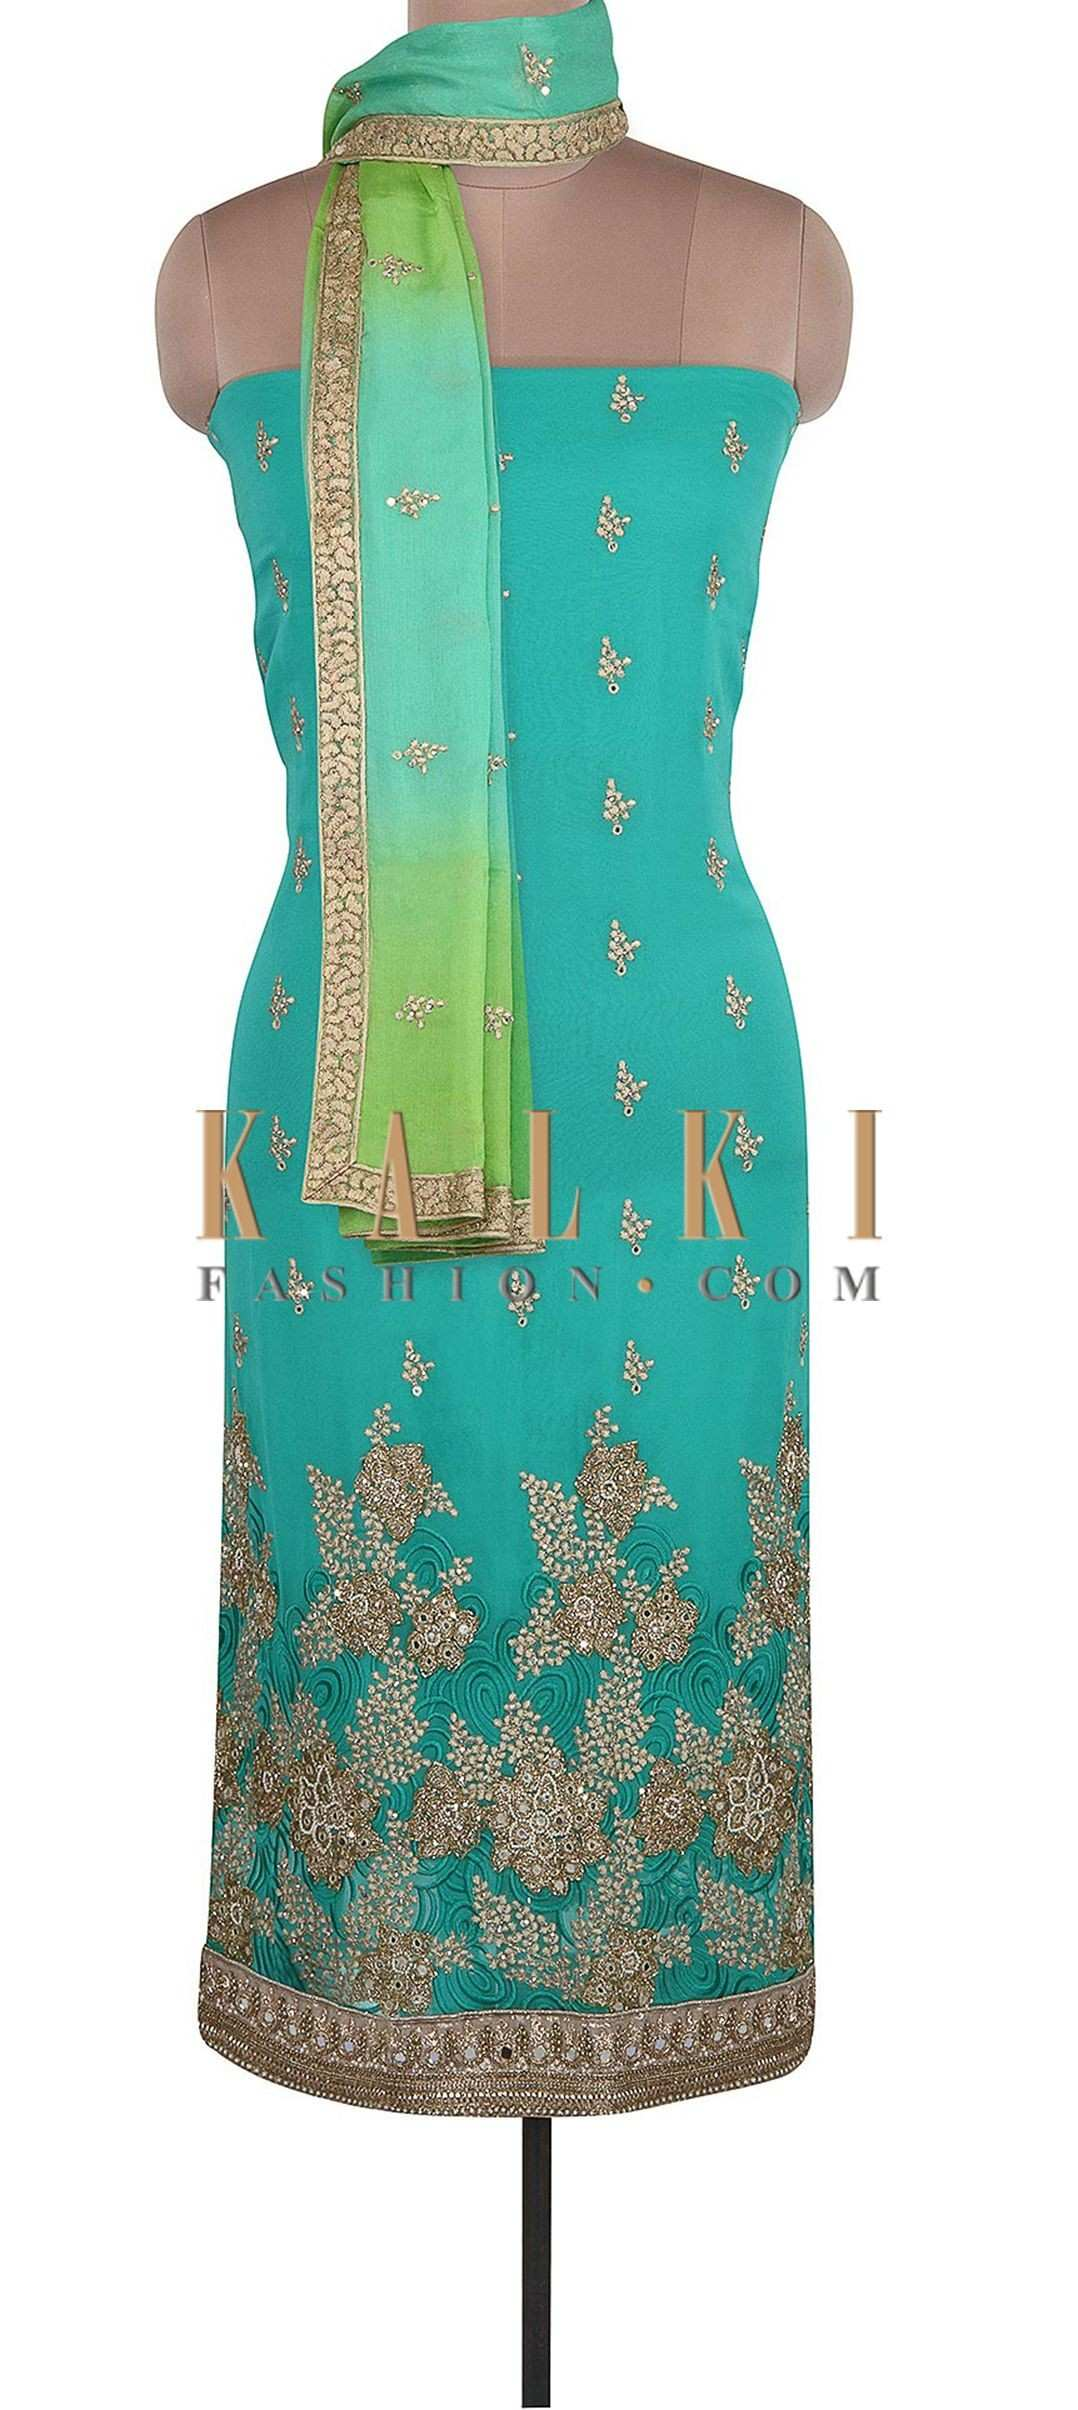 Sea Blue Unstitched Suit Adorn In Resham And Mirror Embroidery ly